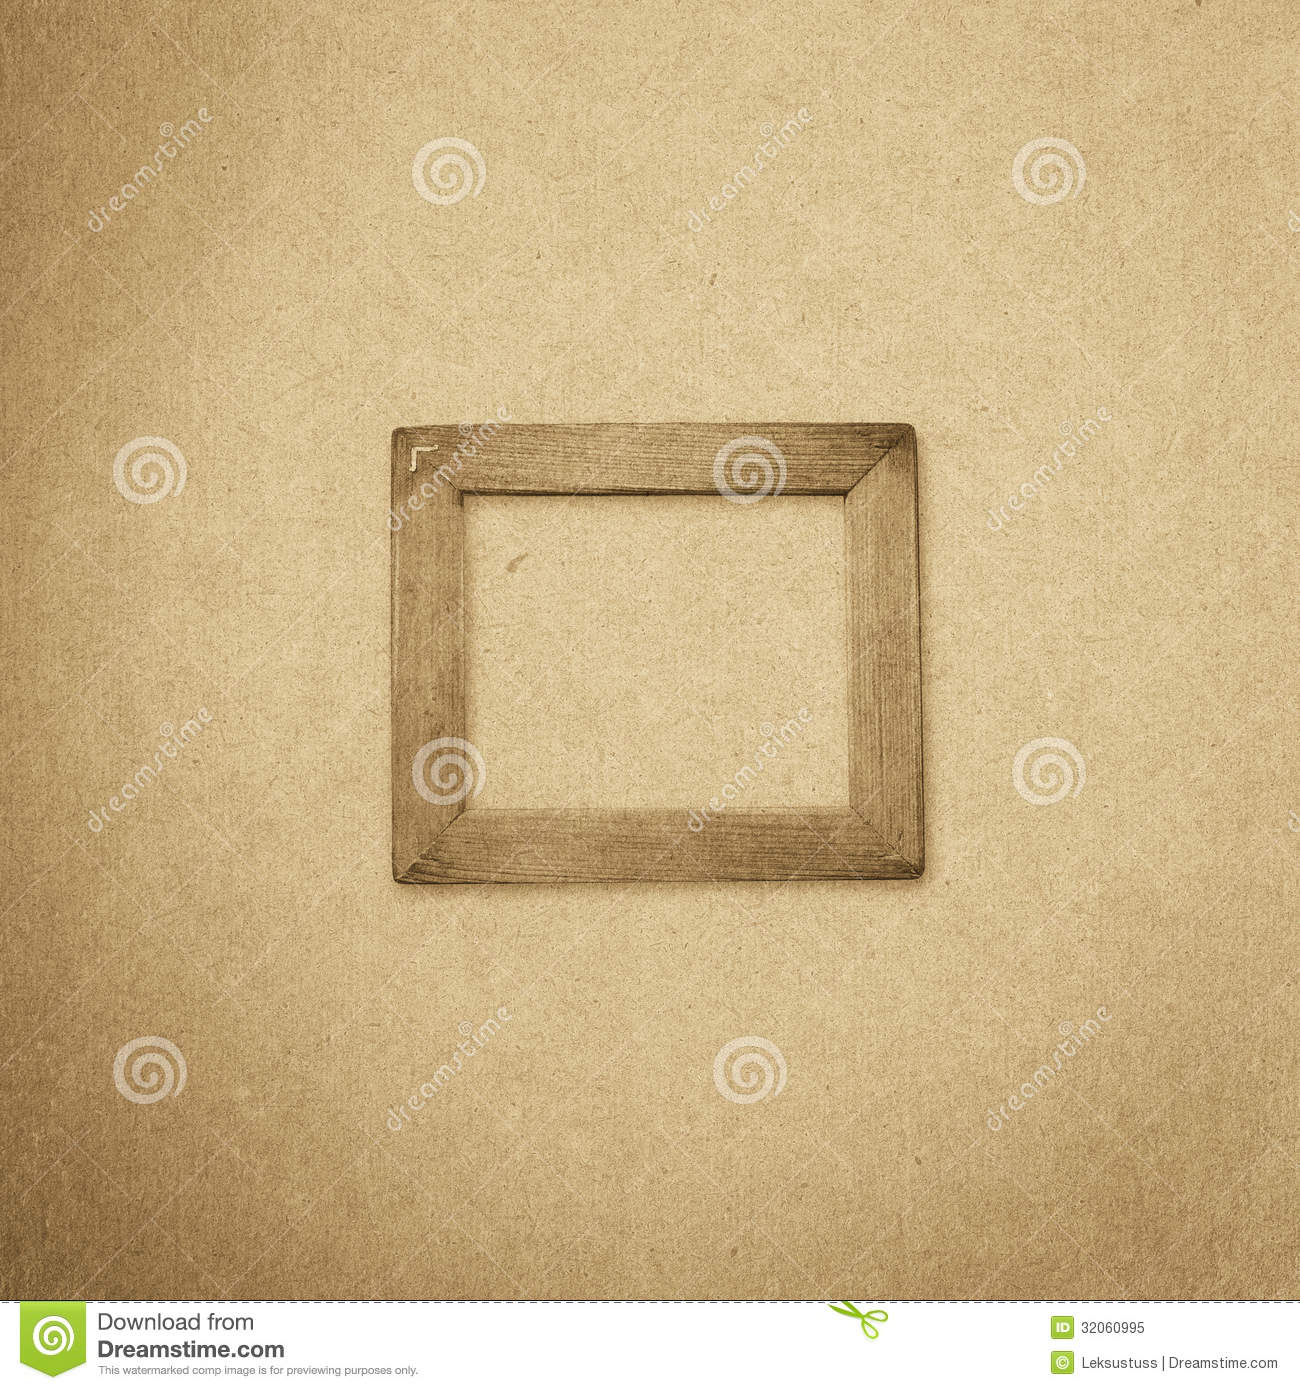 Wood Frame Texture : Grunge Wood Frame Background, Vintage Paper Texture Royalty Free Stock ...